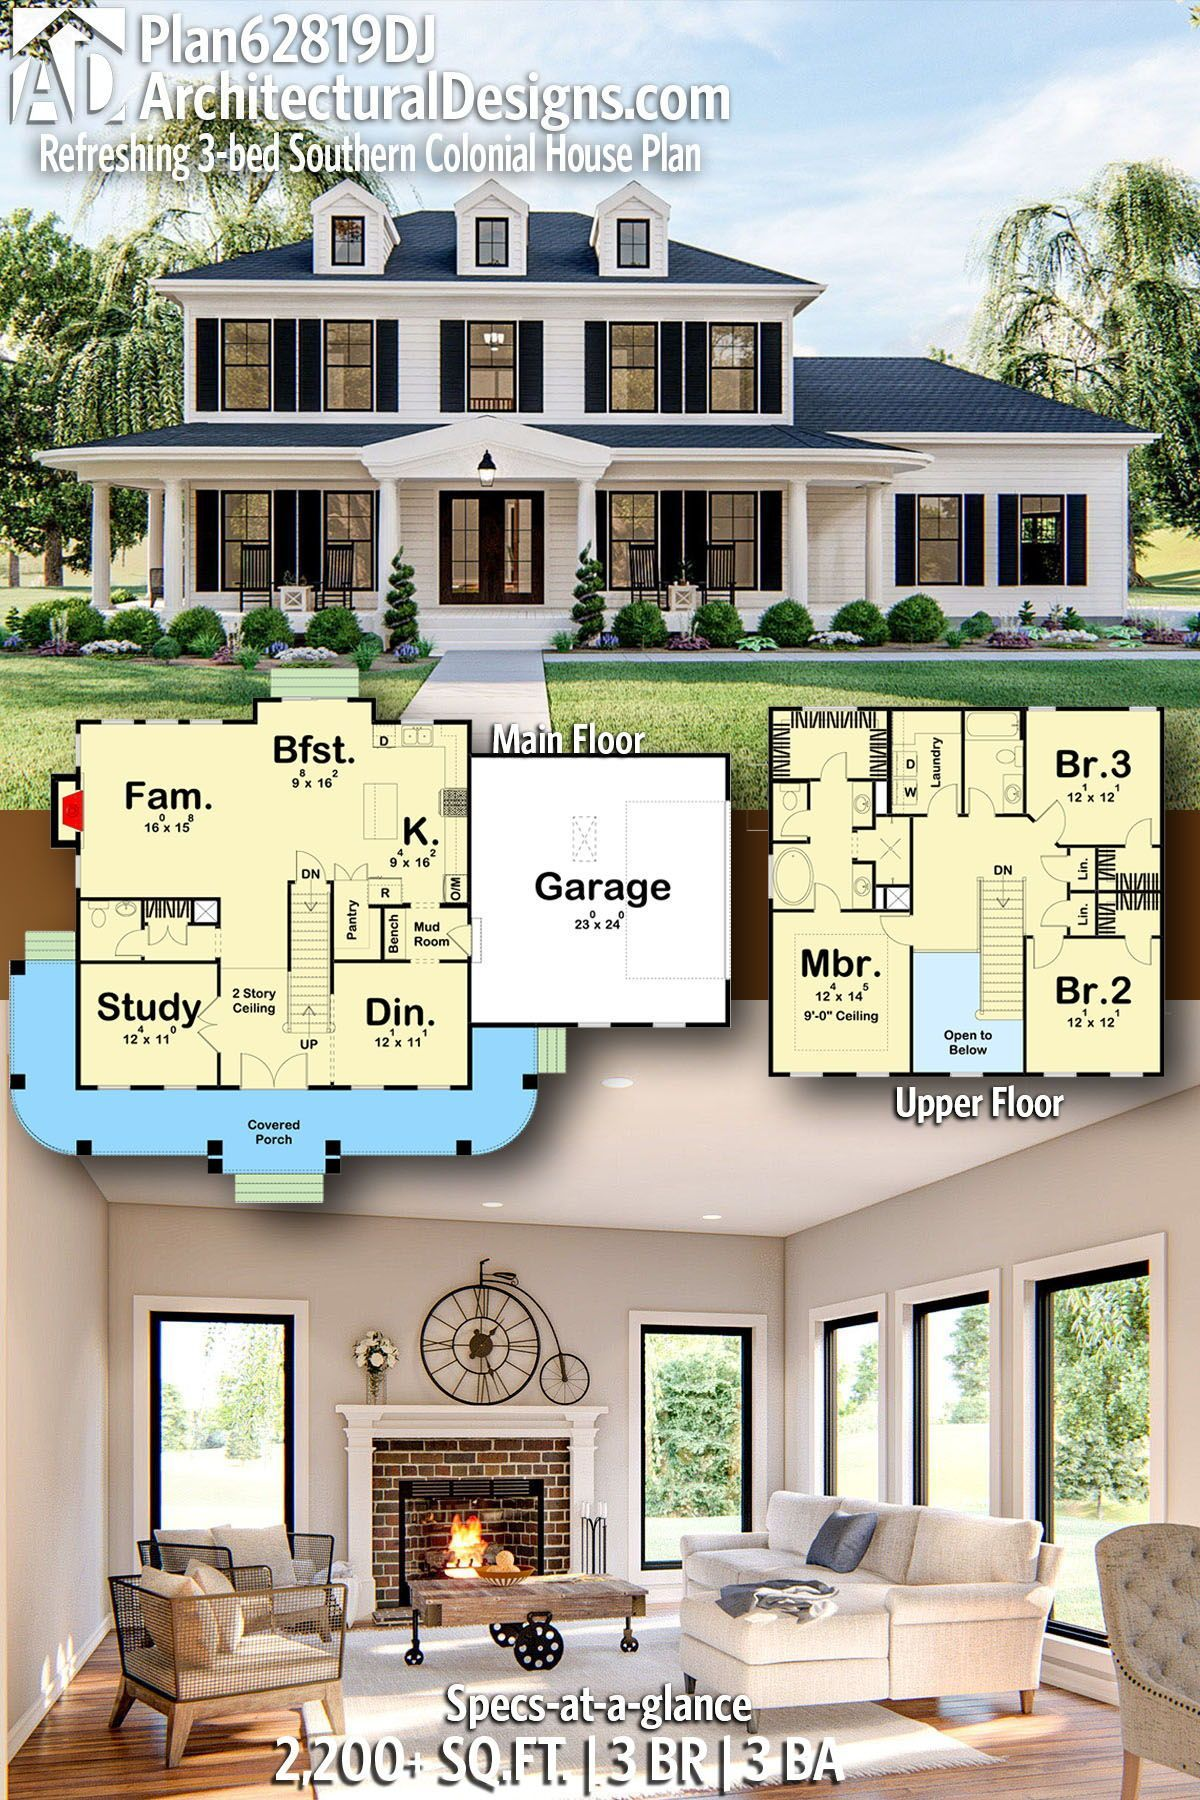 Plan 62819dj Refreshing 3 Bed Southern Colonial House Plan Colonial House Plans Colonial House House Plans